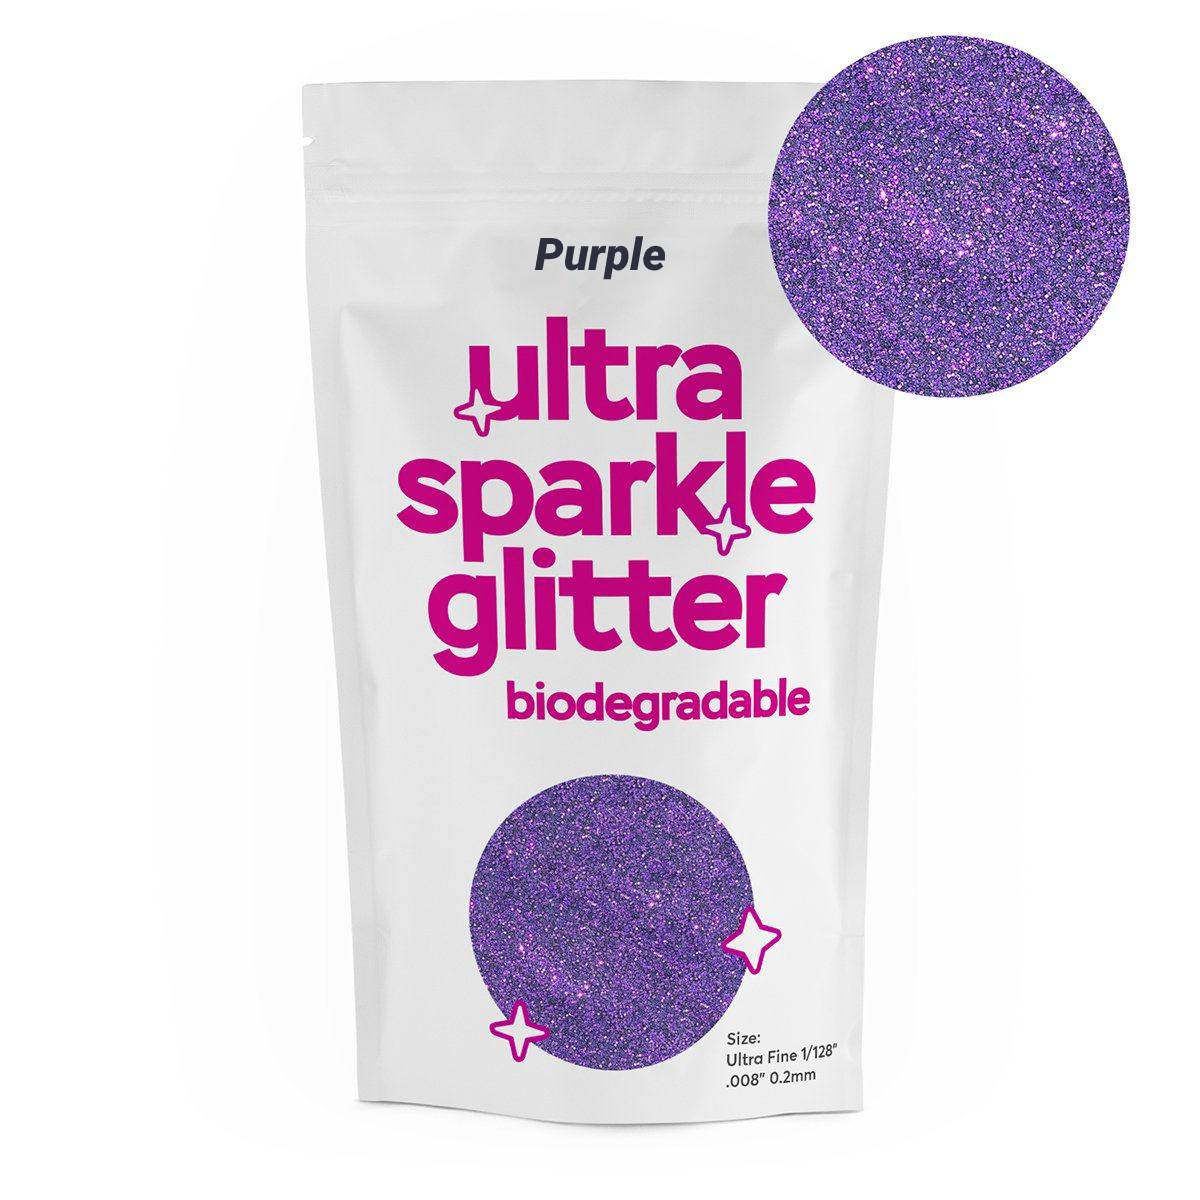 Eco Friendly Biodegradable Ultra Sparkle Glitter! (BUY 2 FREE SHIPPING)